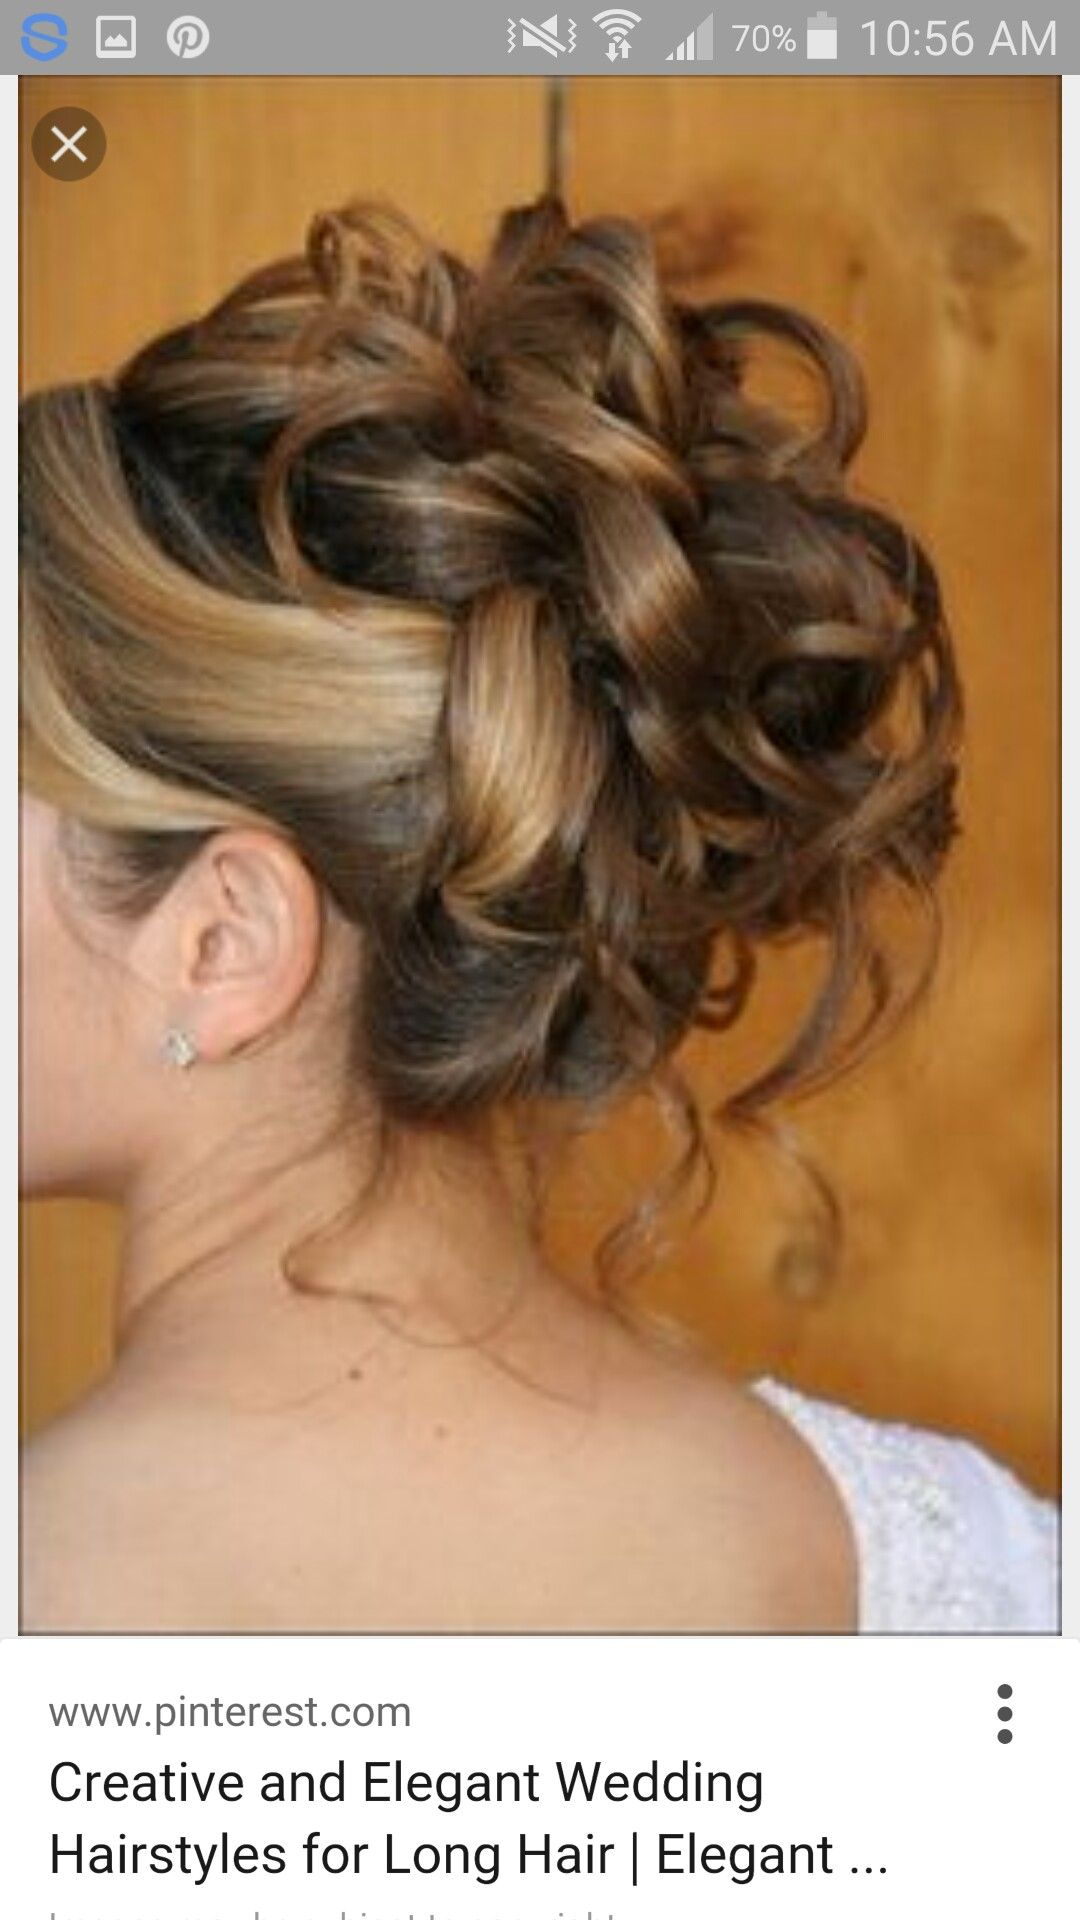 Pin by julie warthan on wedding hair pinterest